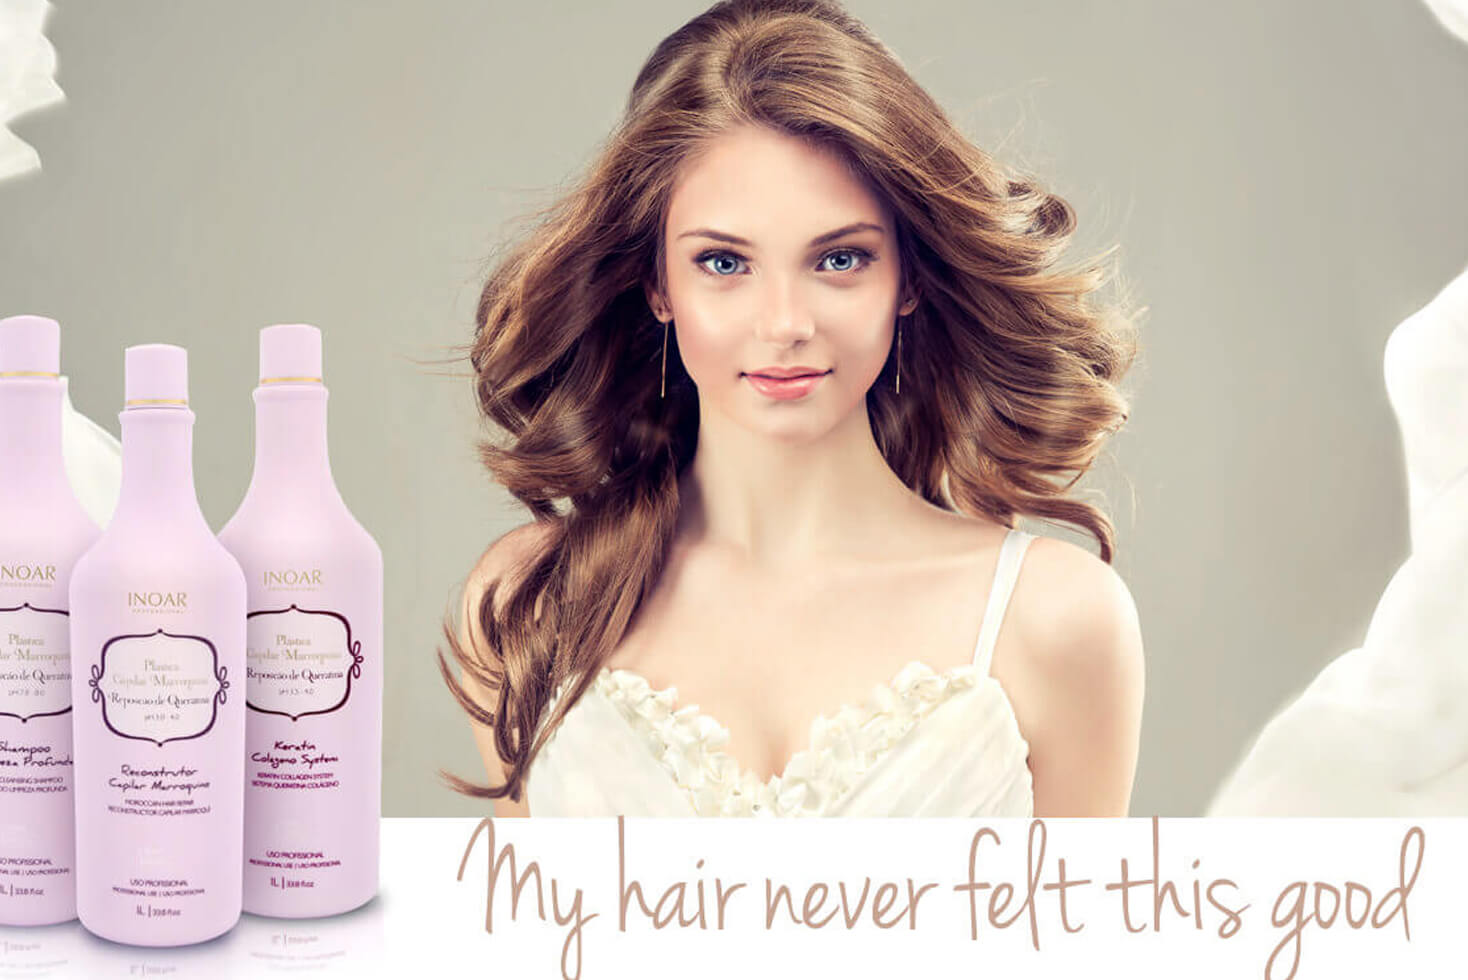 Inoar Botohair Keratin Treatment Is The Only Frizzy Hair Product You Ll Need For Humidity Proof Hair